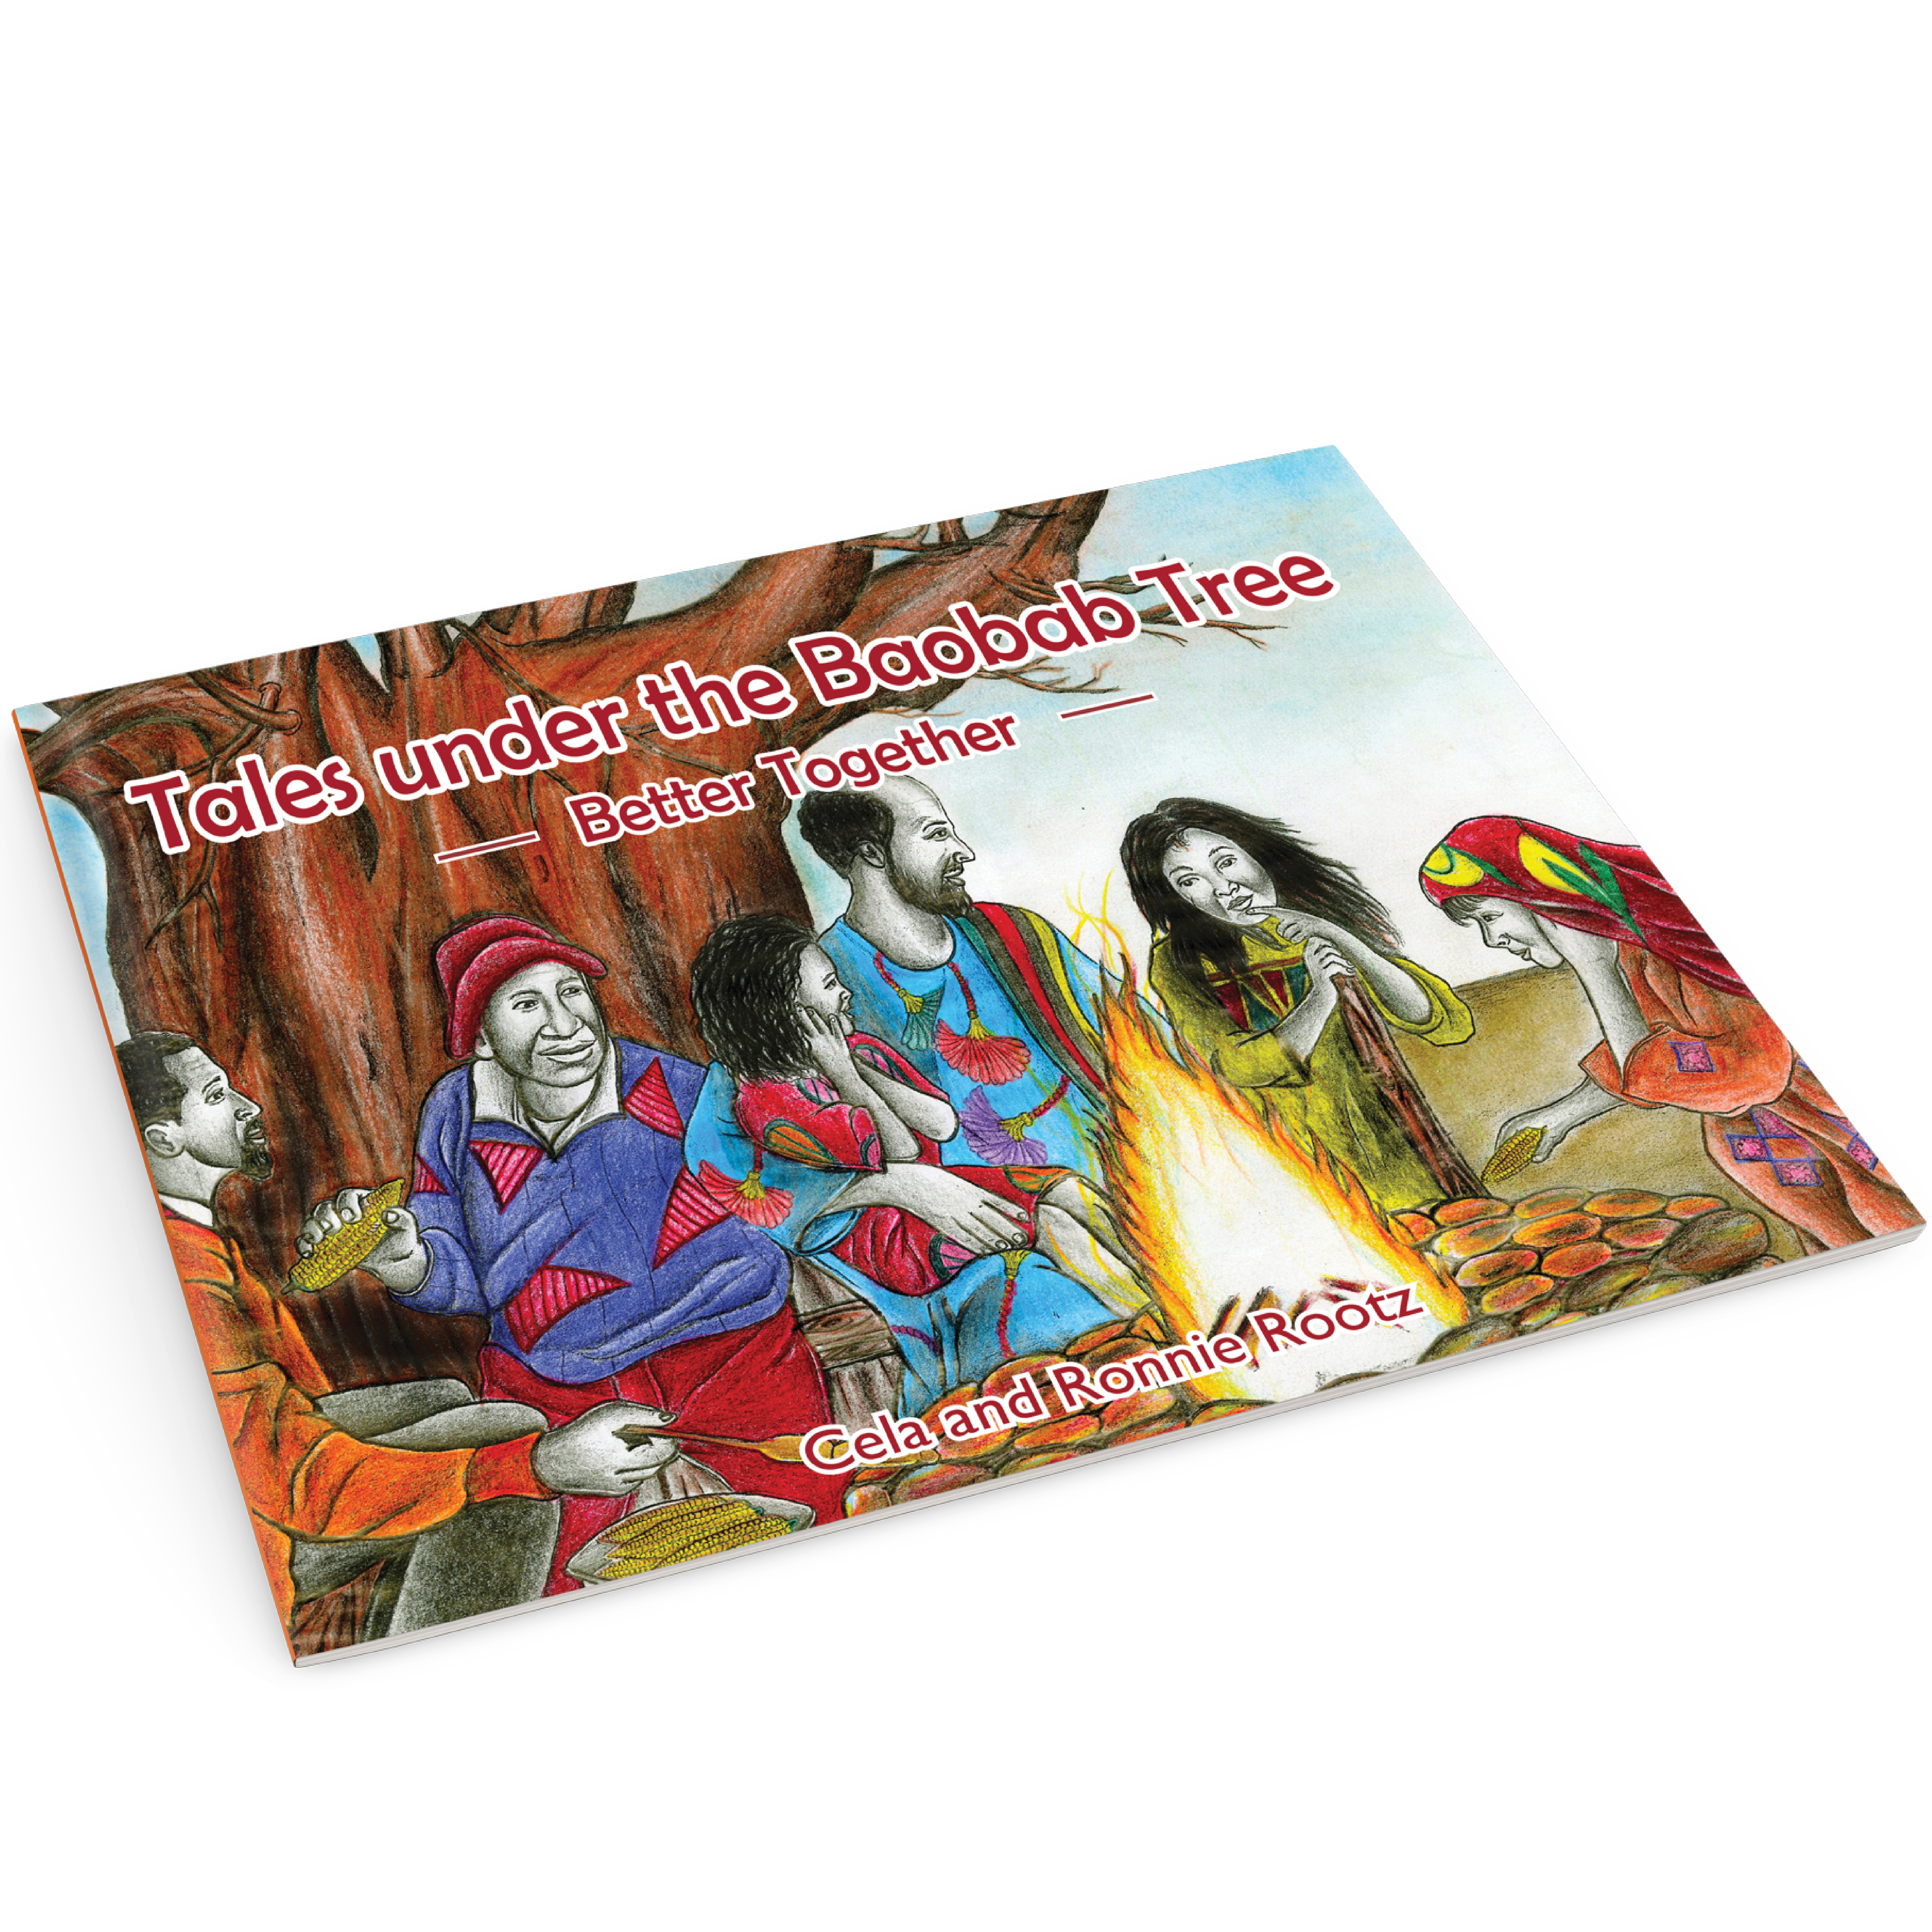 Tales under the Baobab tree: Better Together by Cela and Ronnie Rootz